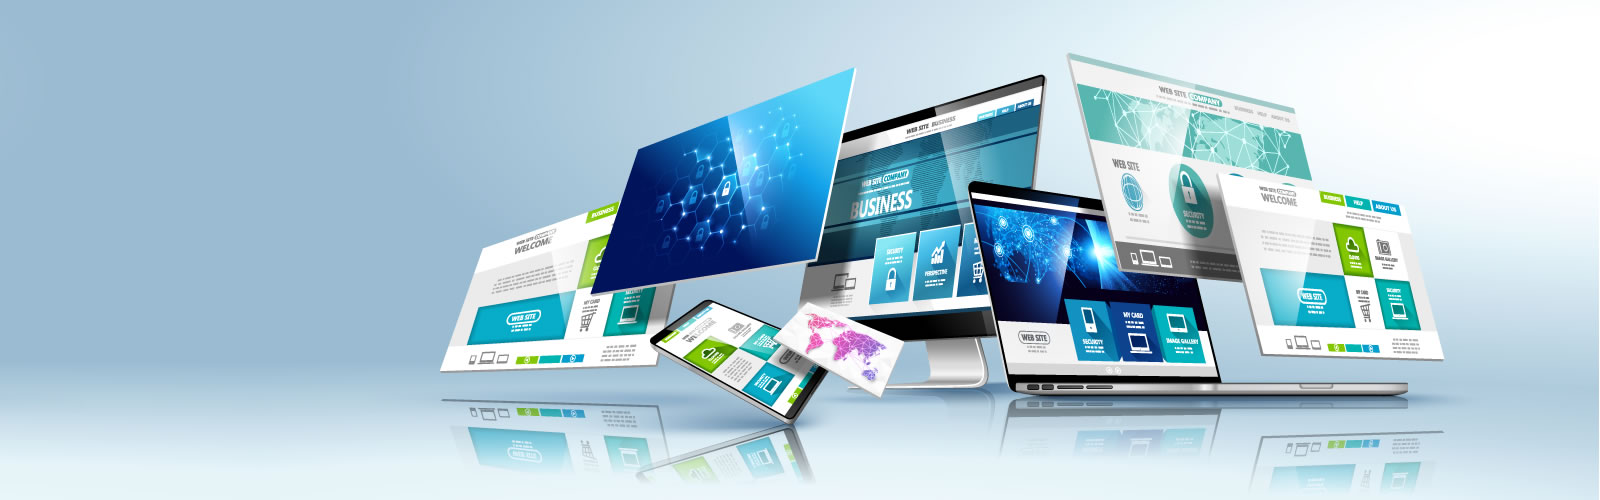 Opt For The Best Web Design Birmingham Services To Expose Your Online Business